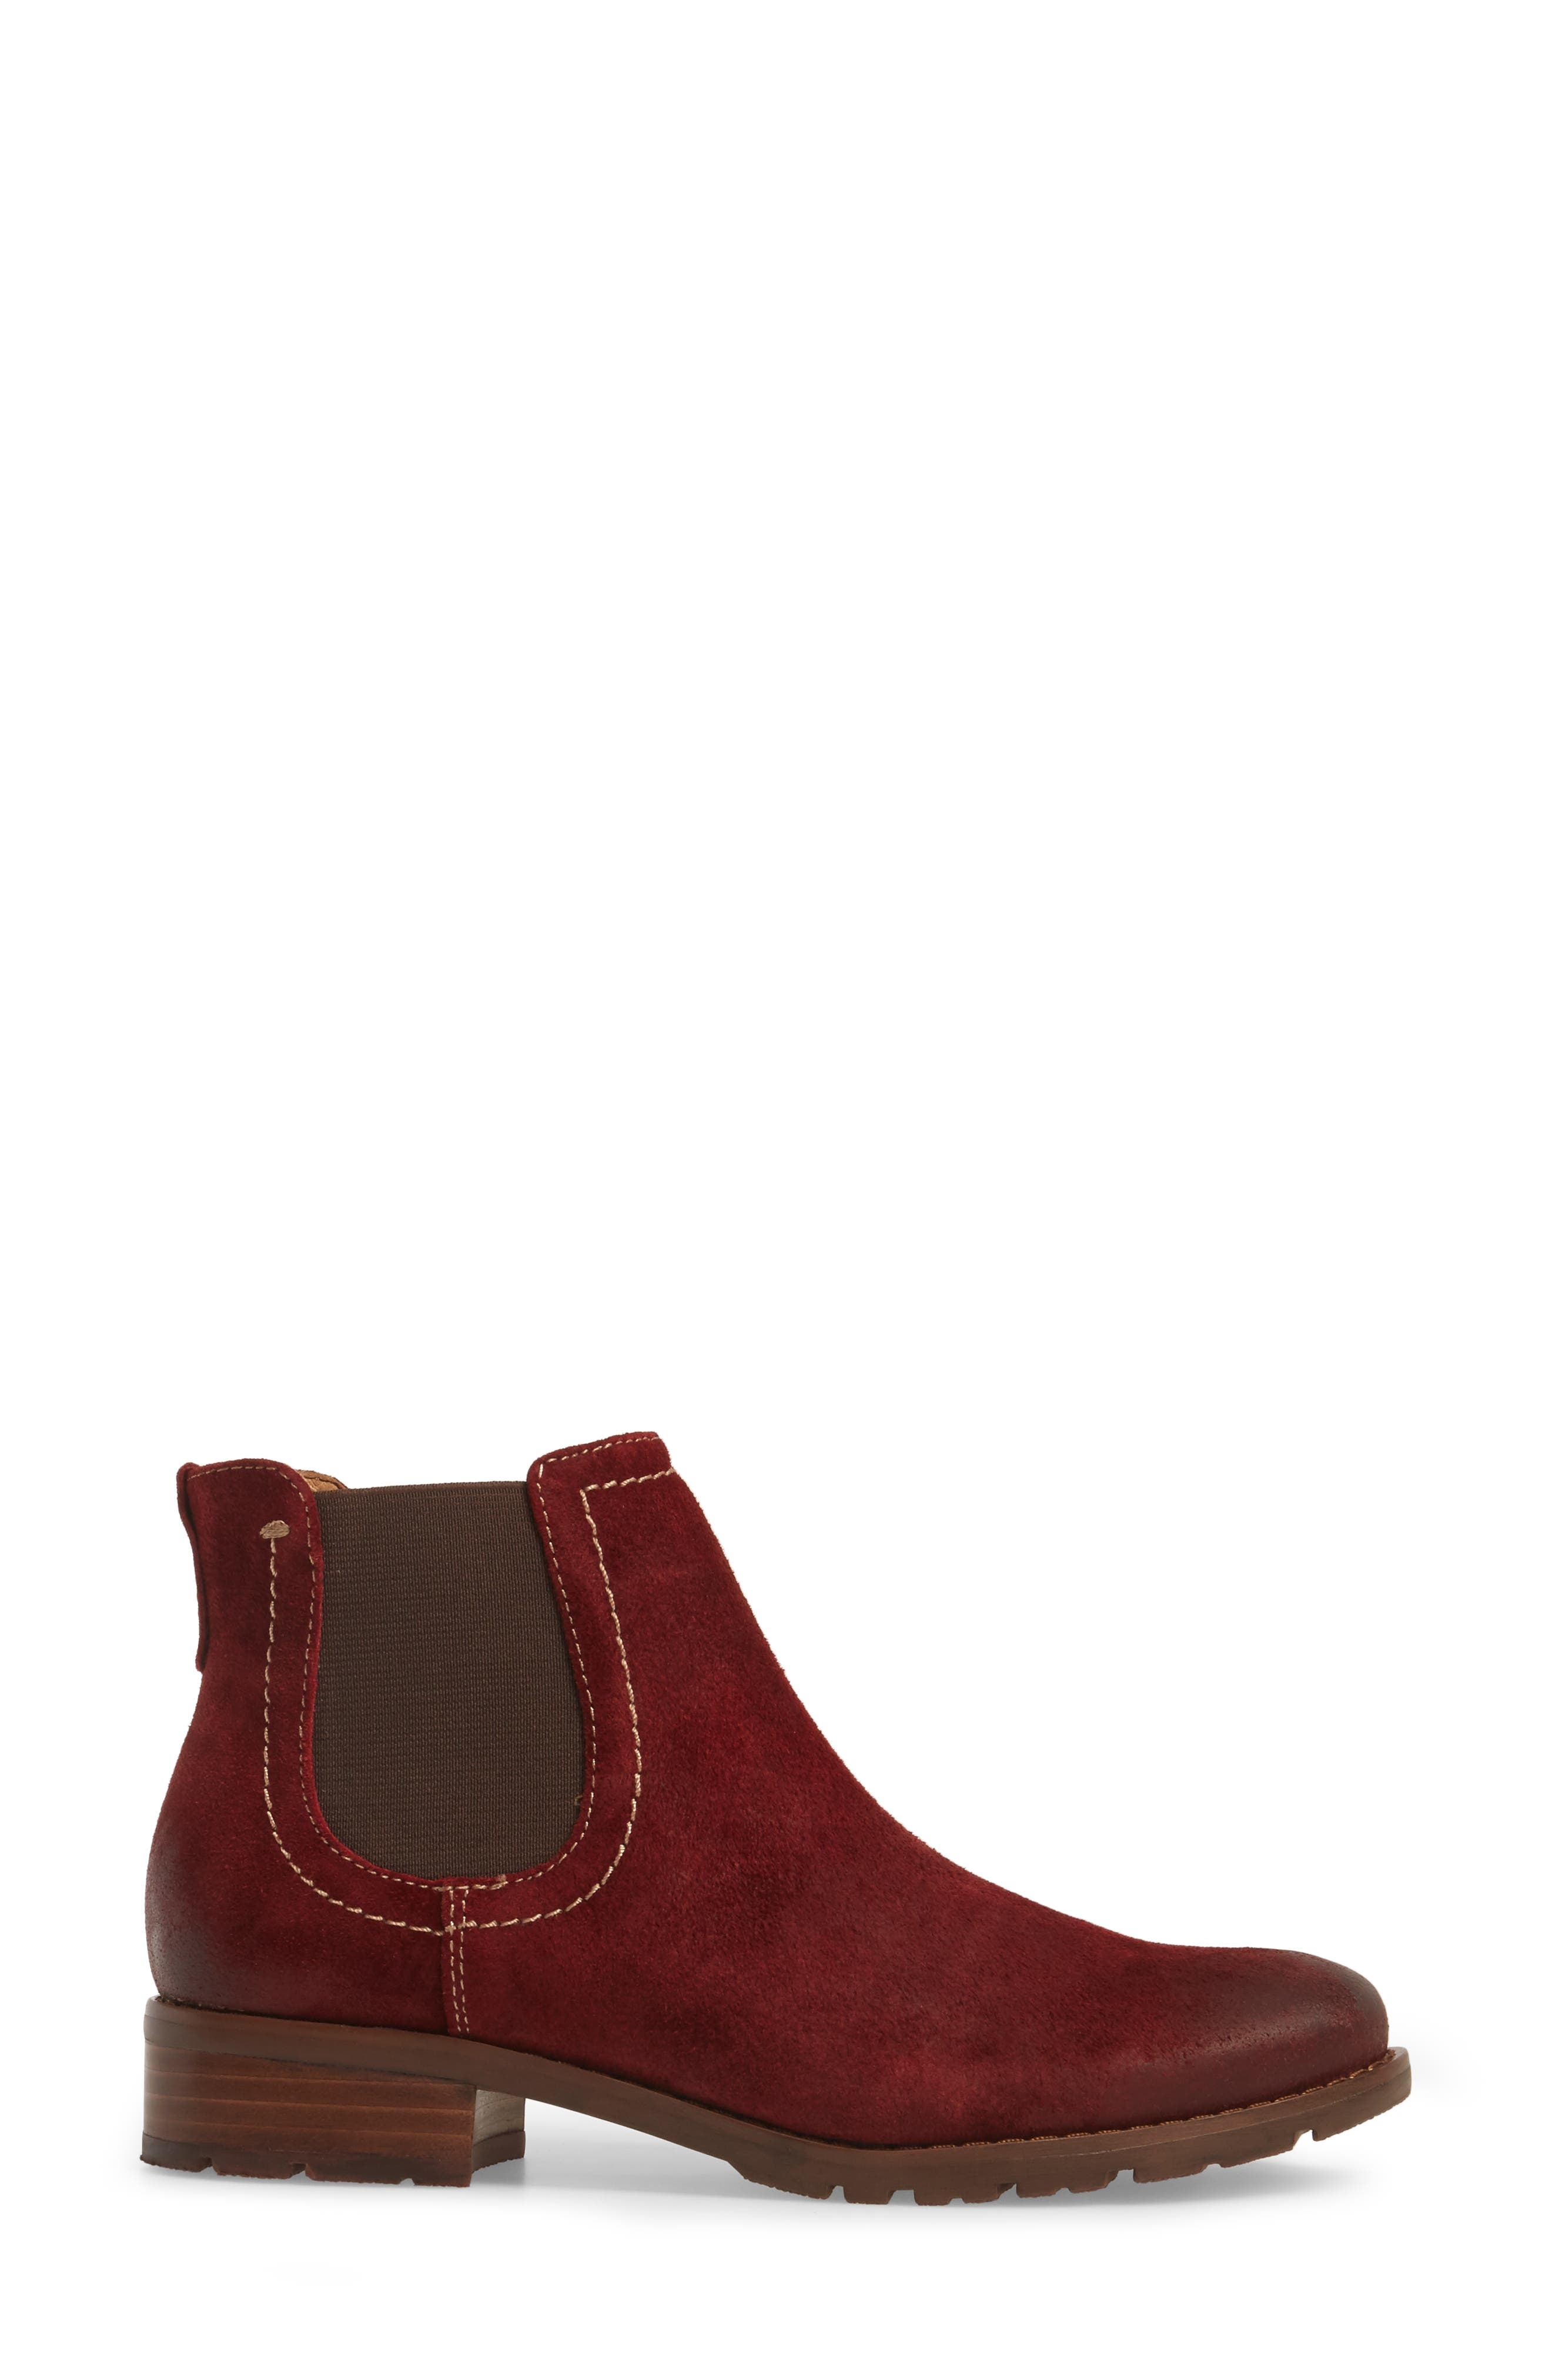 'Selby' Chelsea Bootie,                             Alternate thumbnail 3, color,                             Bordo Suede